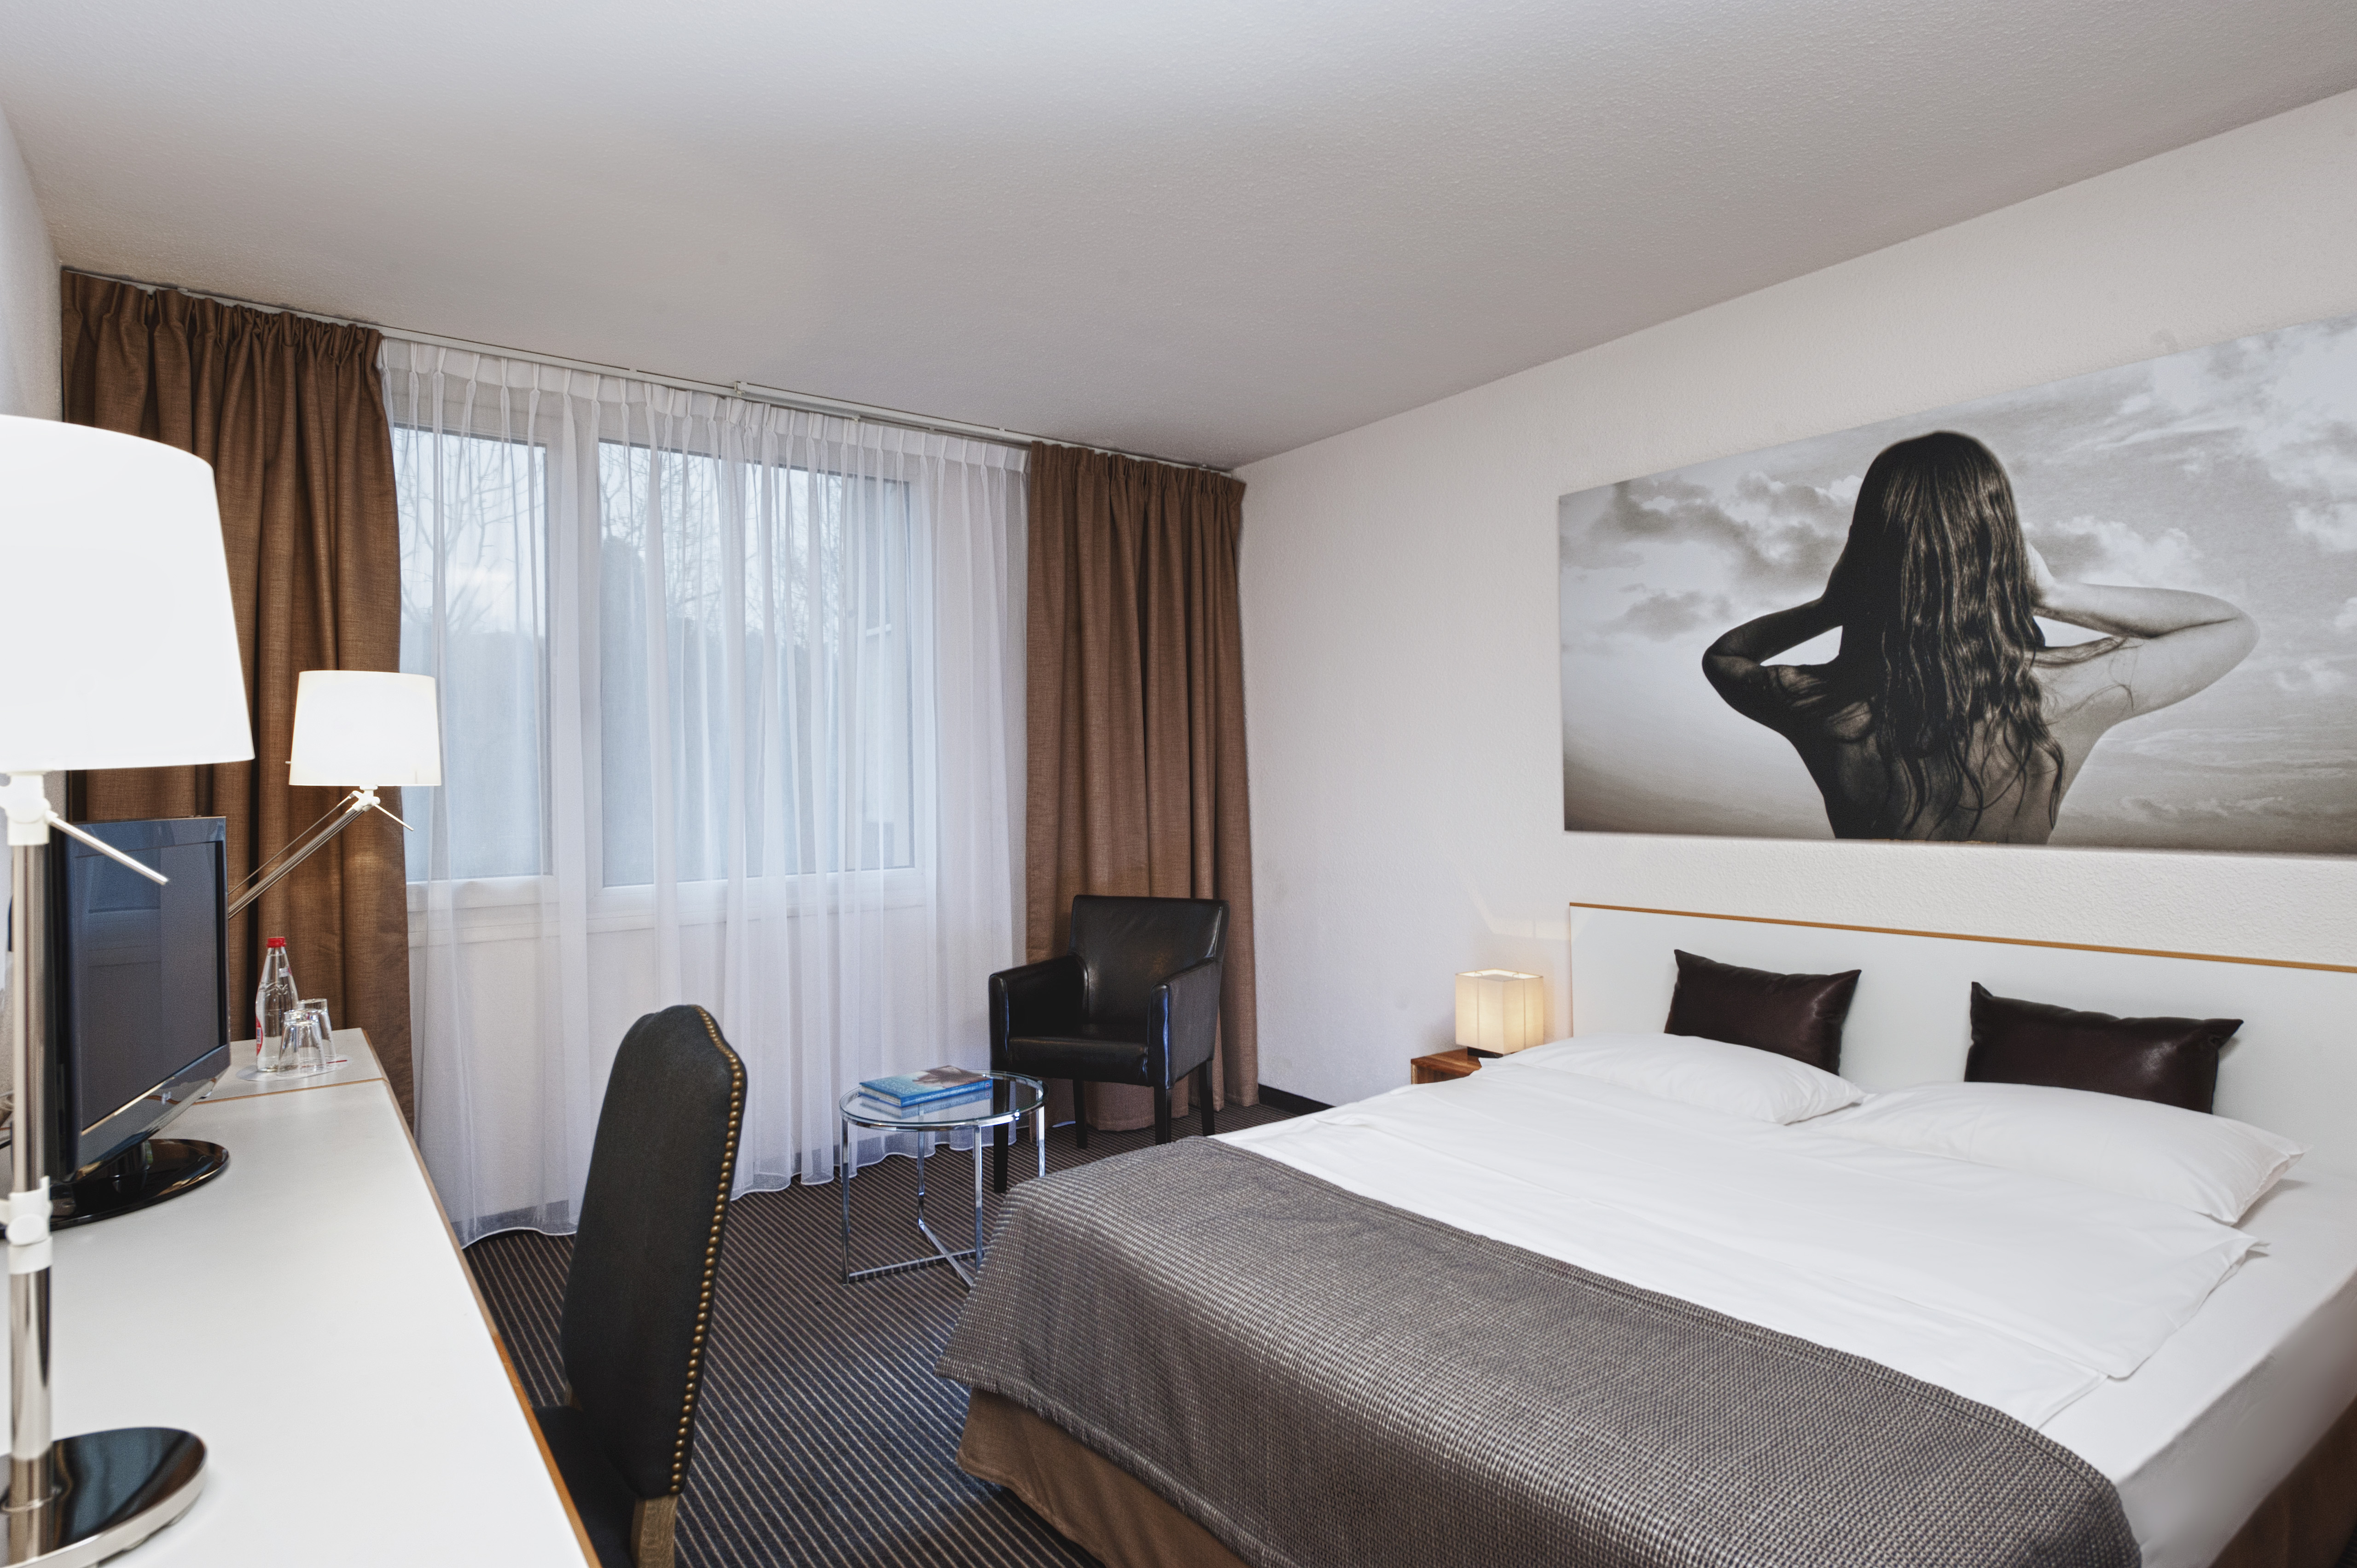 Hotel wuppertal tryp by wyndham wuppertal hotel for Hotel wuppertal